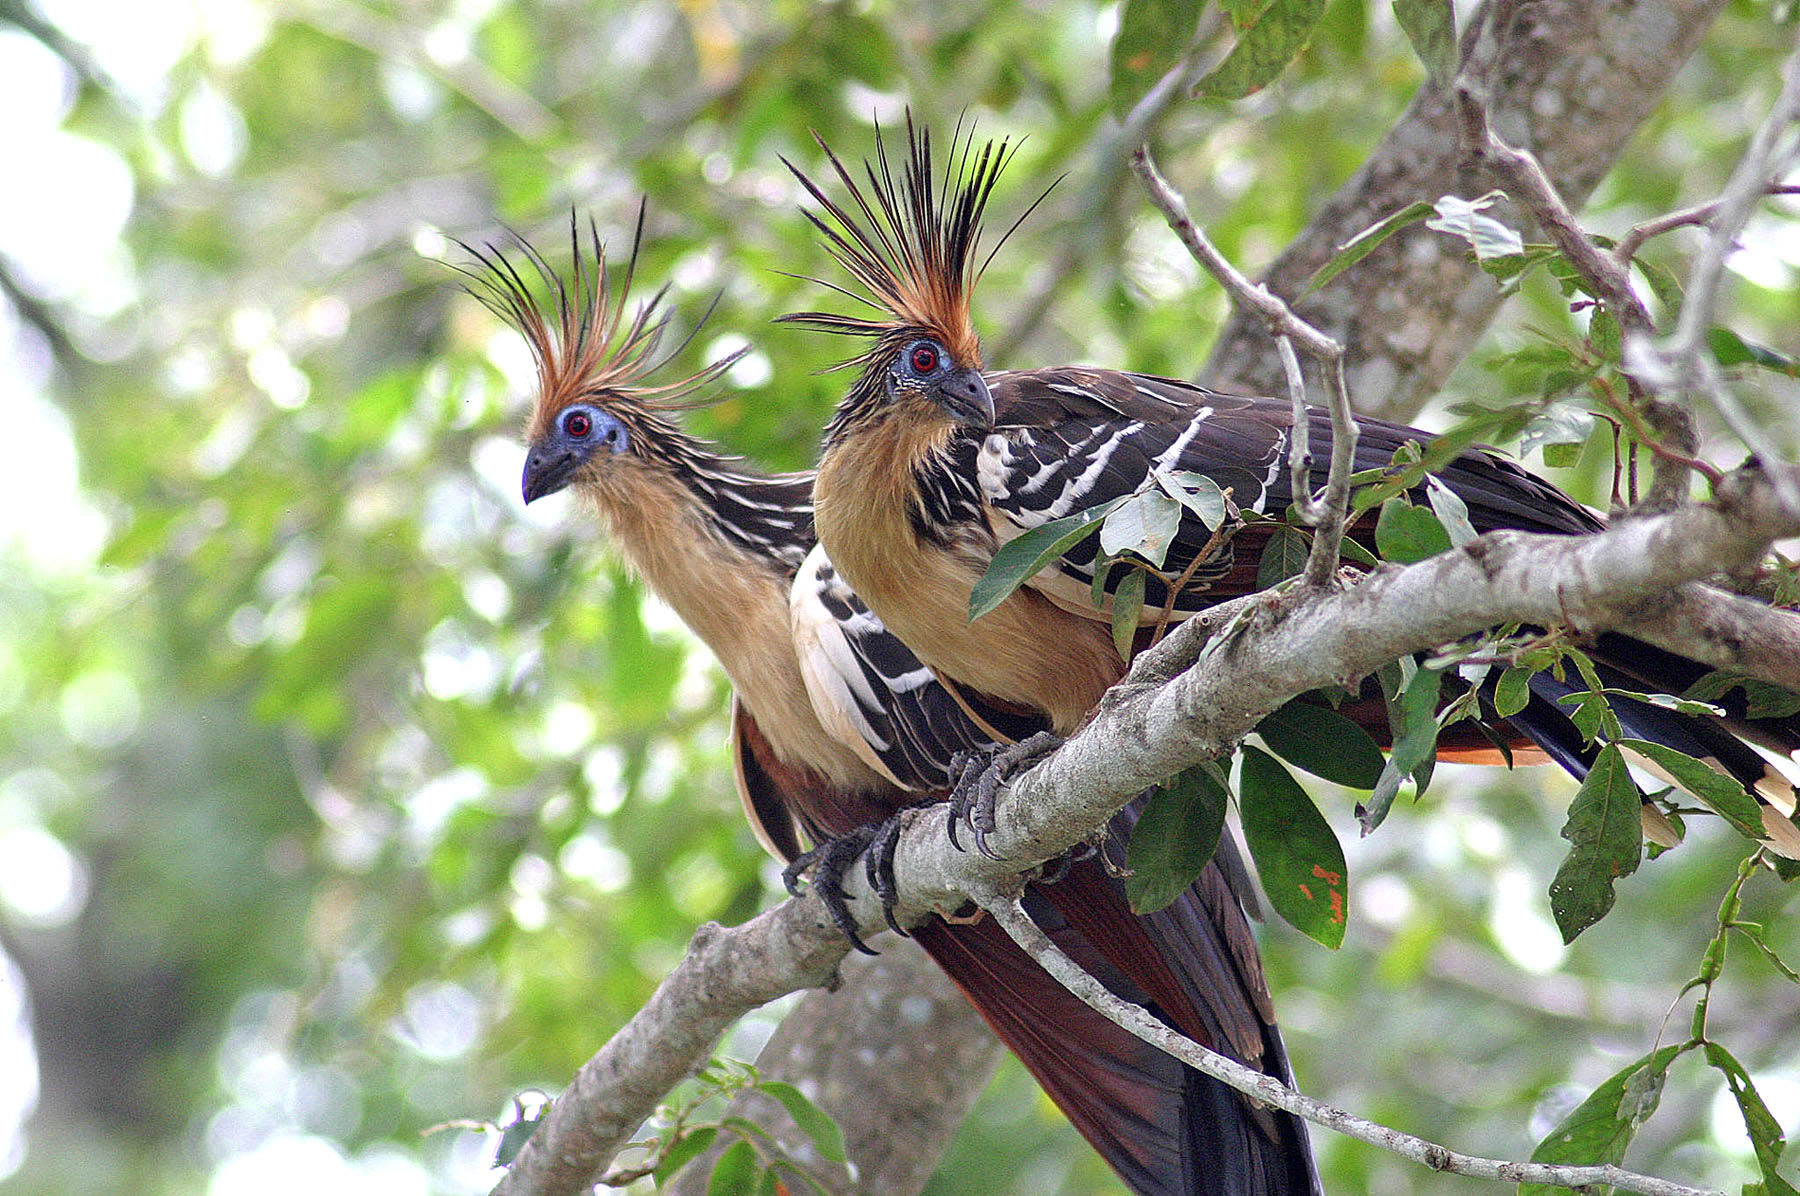 THE-HOATZIN-BIRD